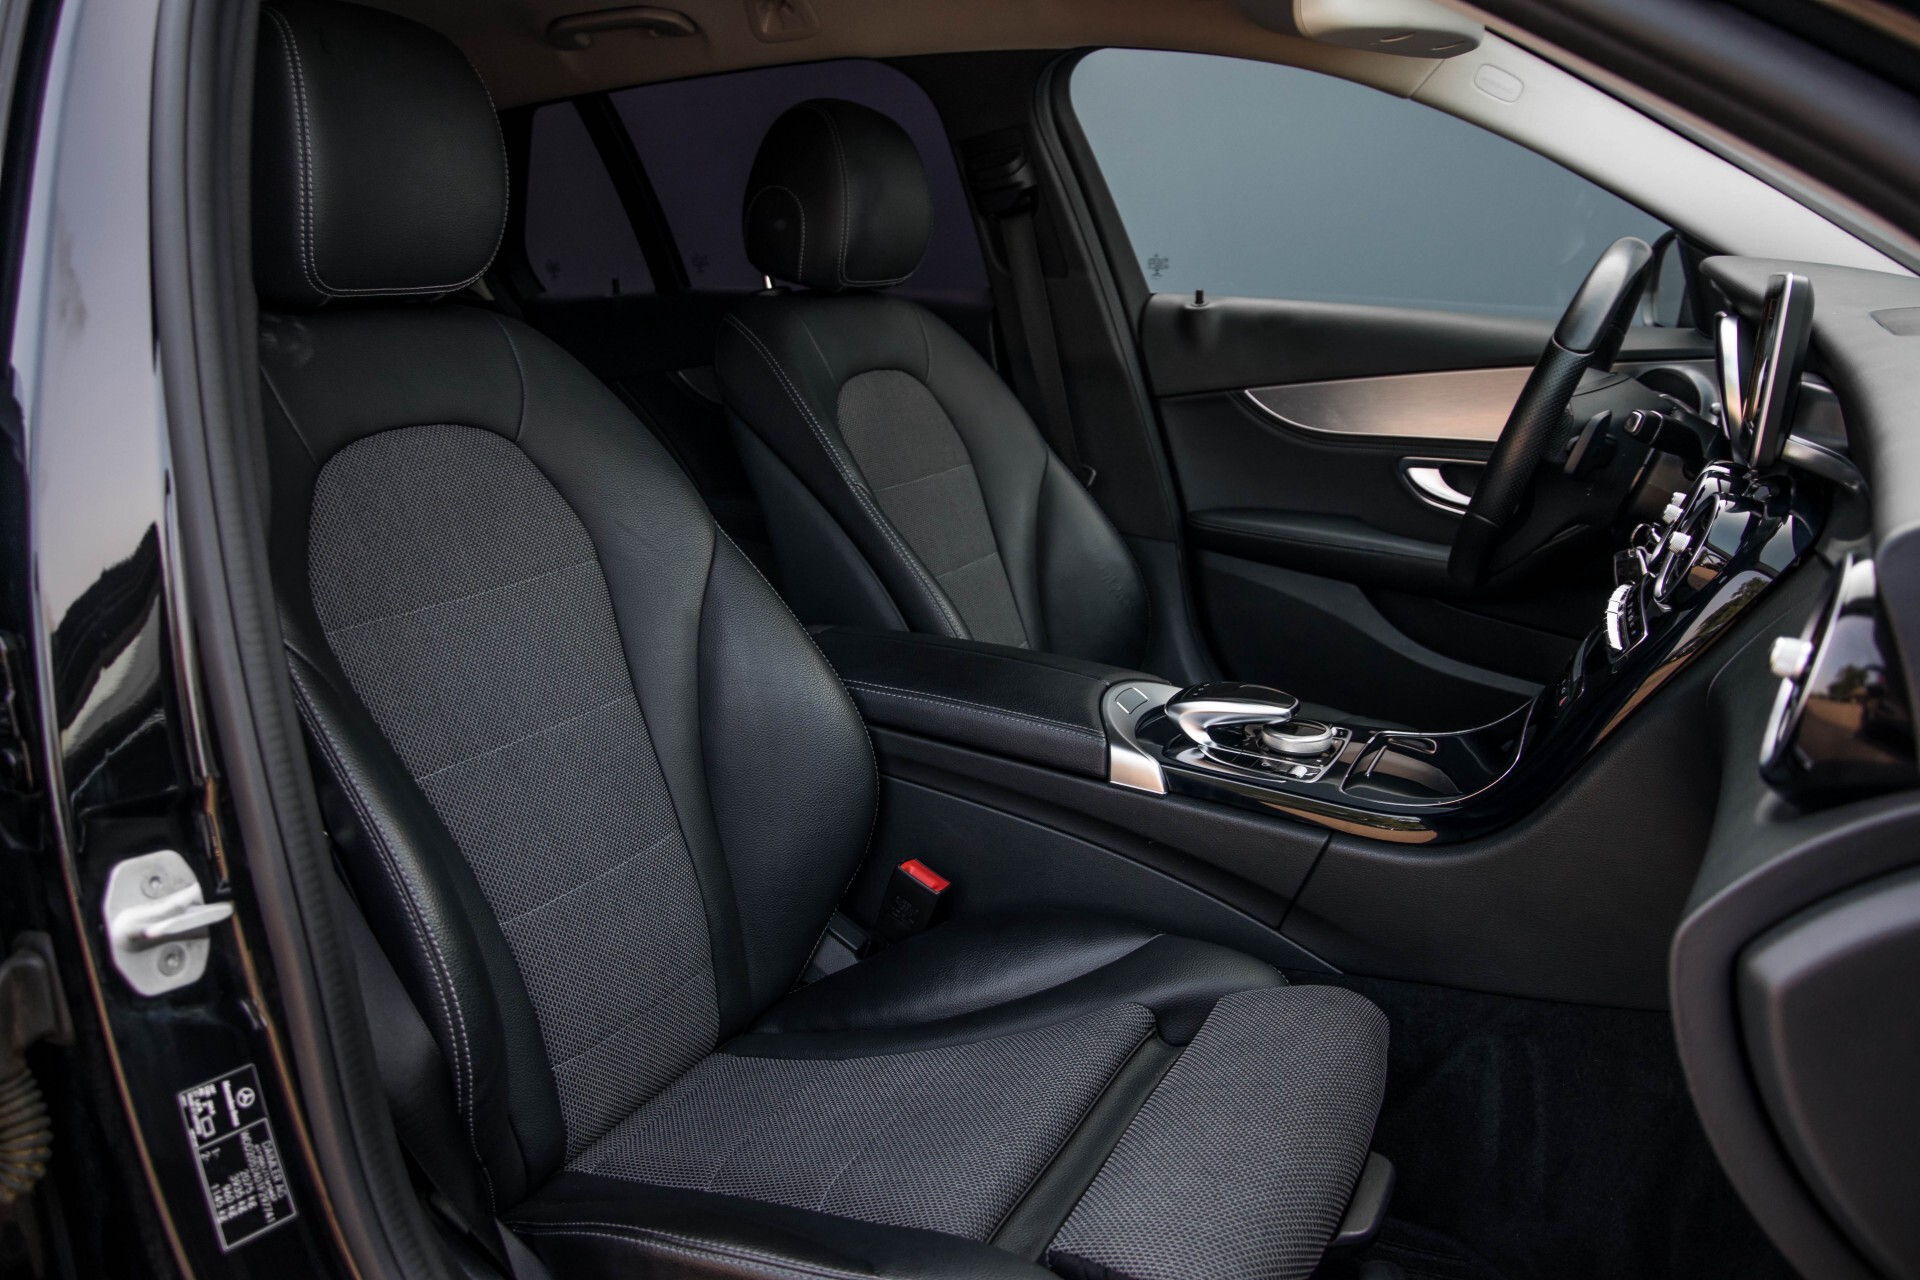 Mercedes-Benz C-Klasse Estate 180 Avantgarde LED/Navi/Privacyglas/Pts/Aut-koffer Aut7 Foto 3